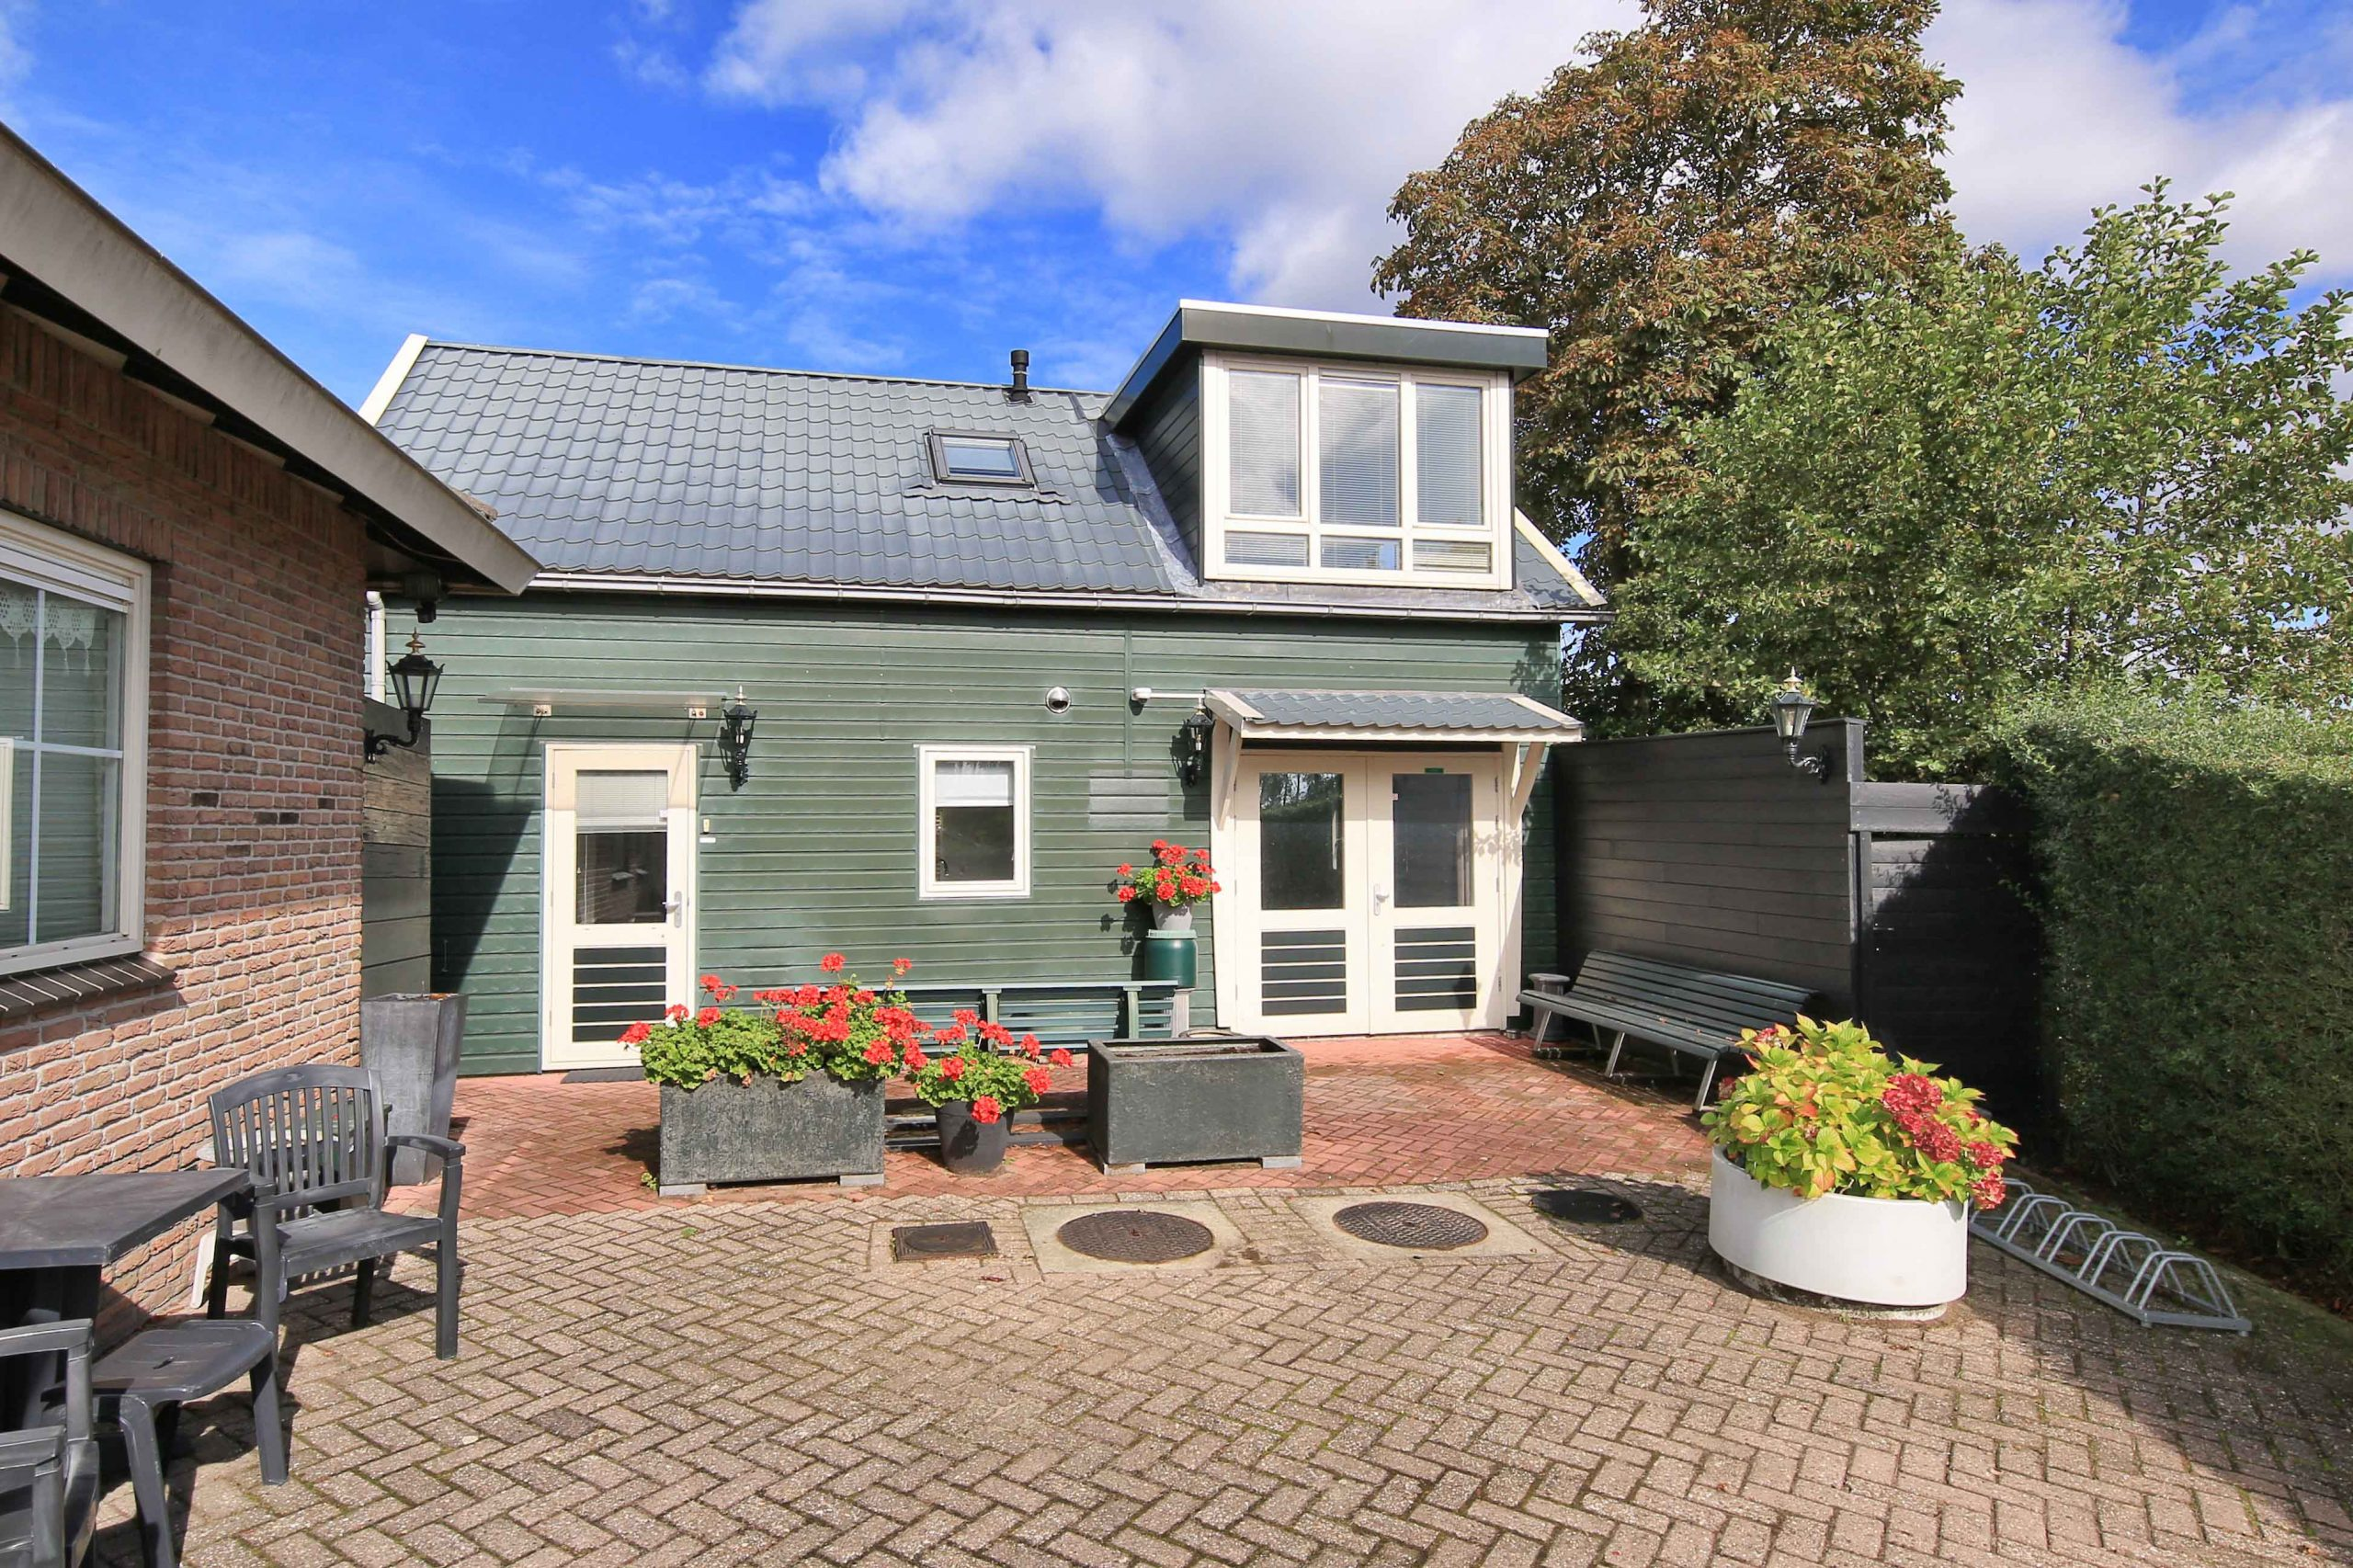 For rent for a limited period! Rustic situated house with parking, front terrace and unobstructed view @Badhoevedorp, Koekoekslaan 127